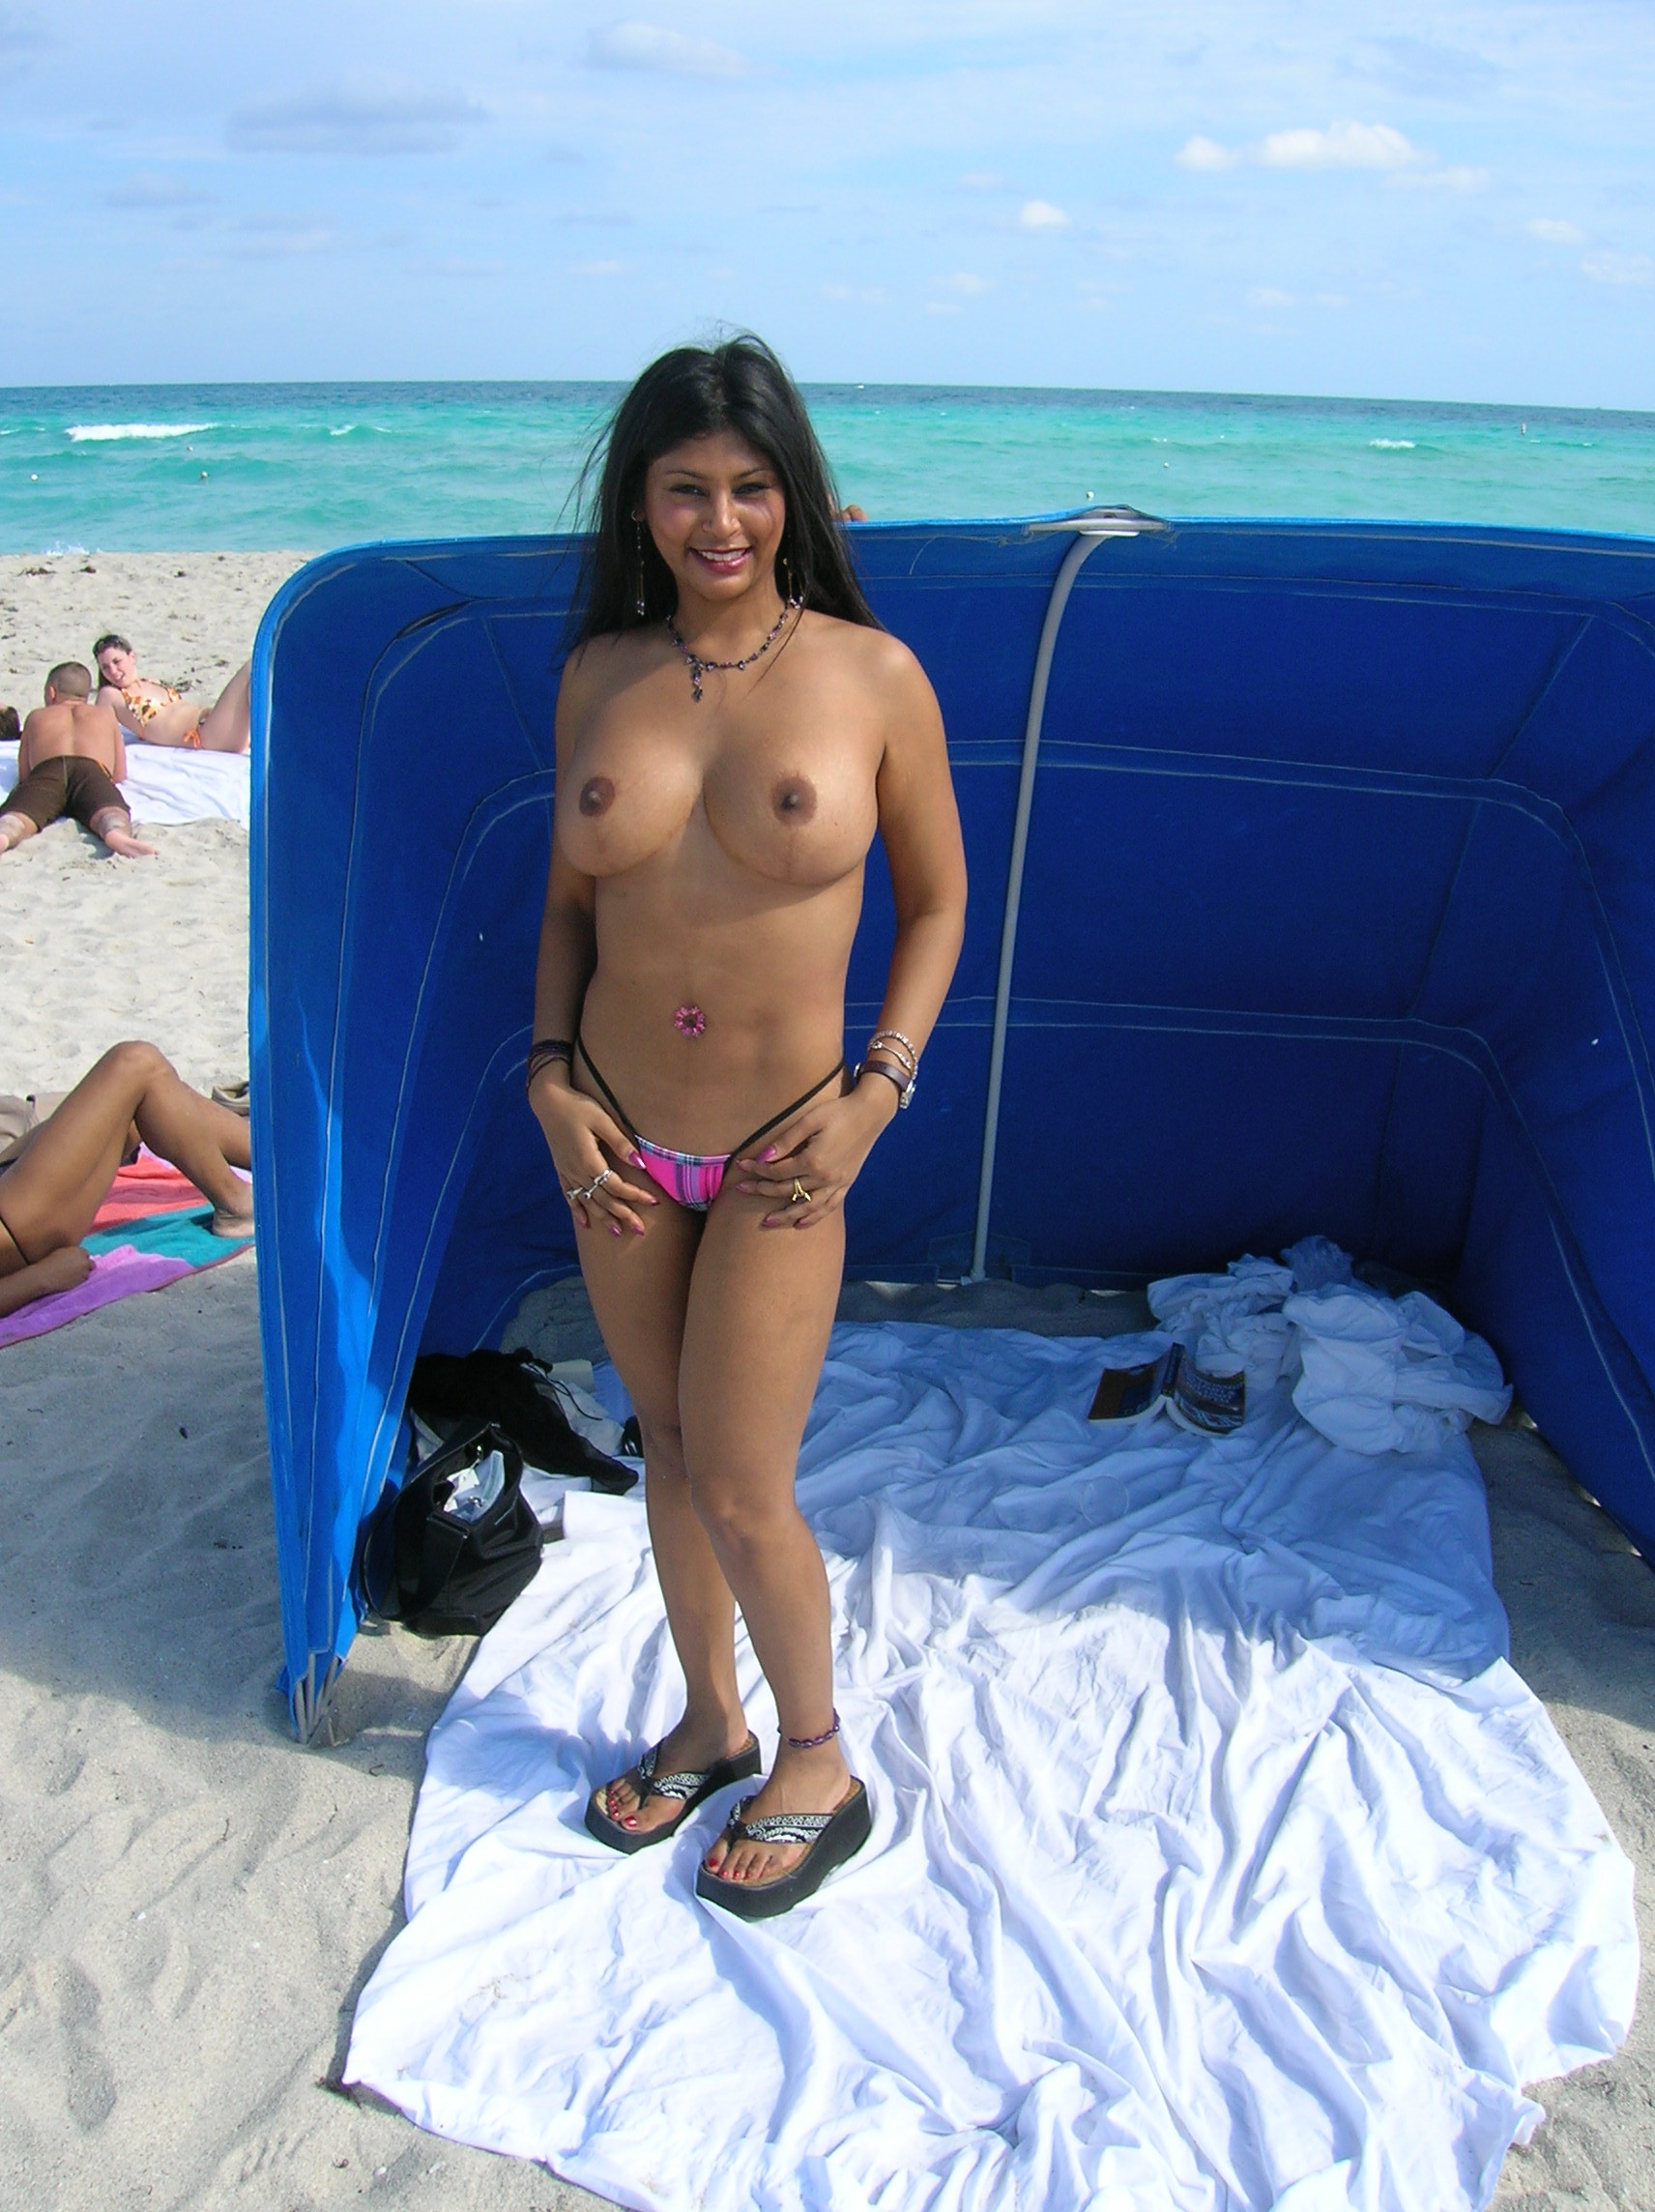 Nude images of indian girls at beaches — 11